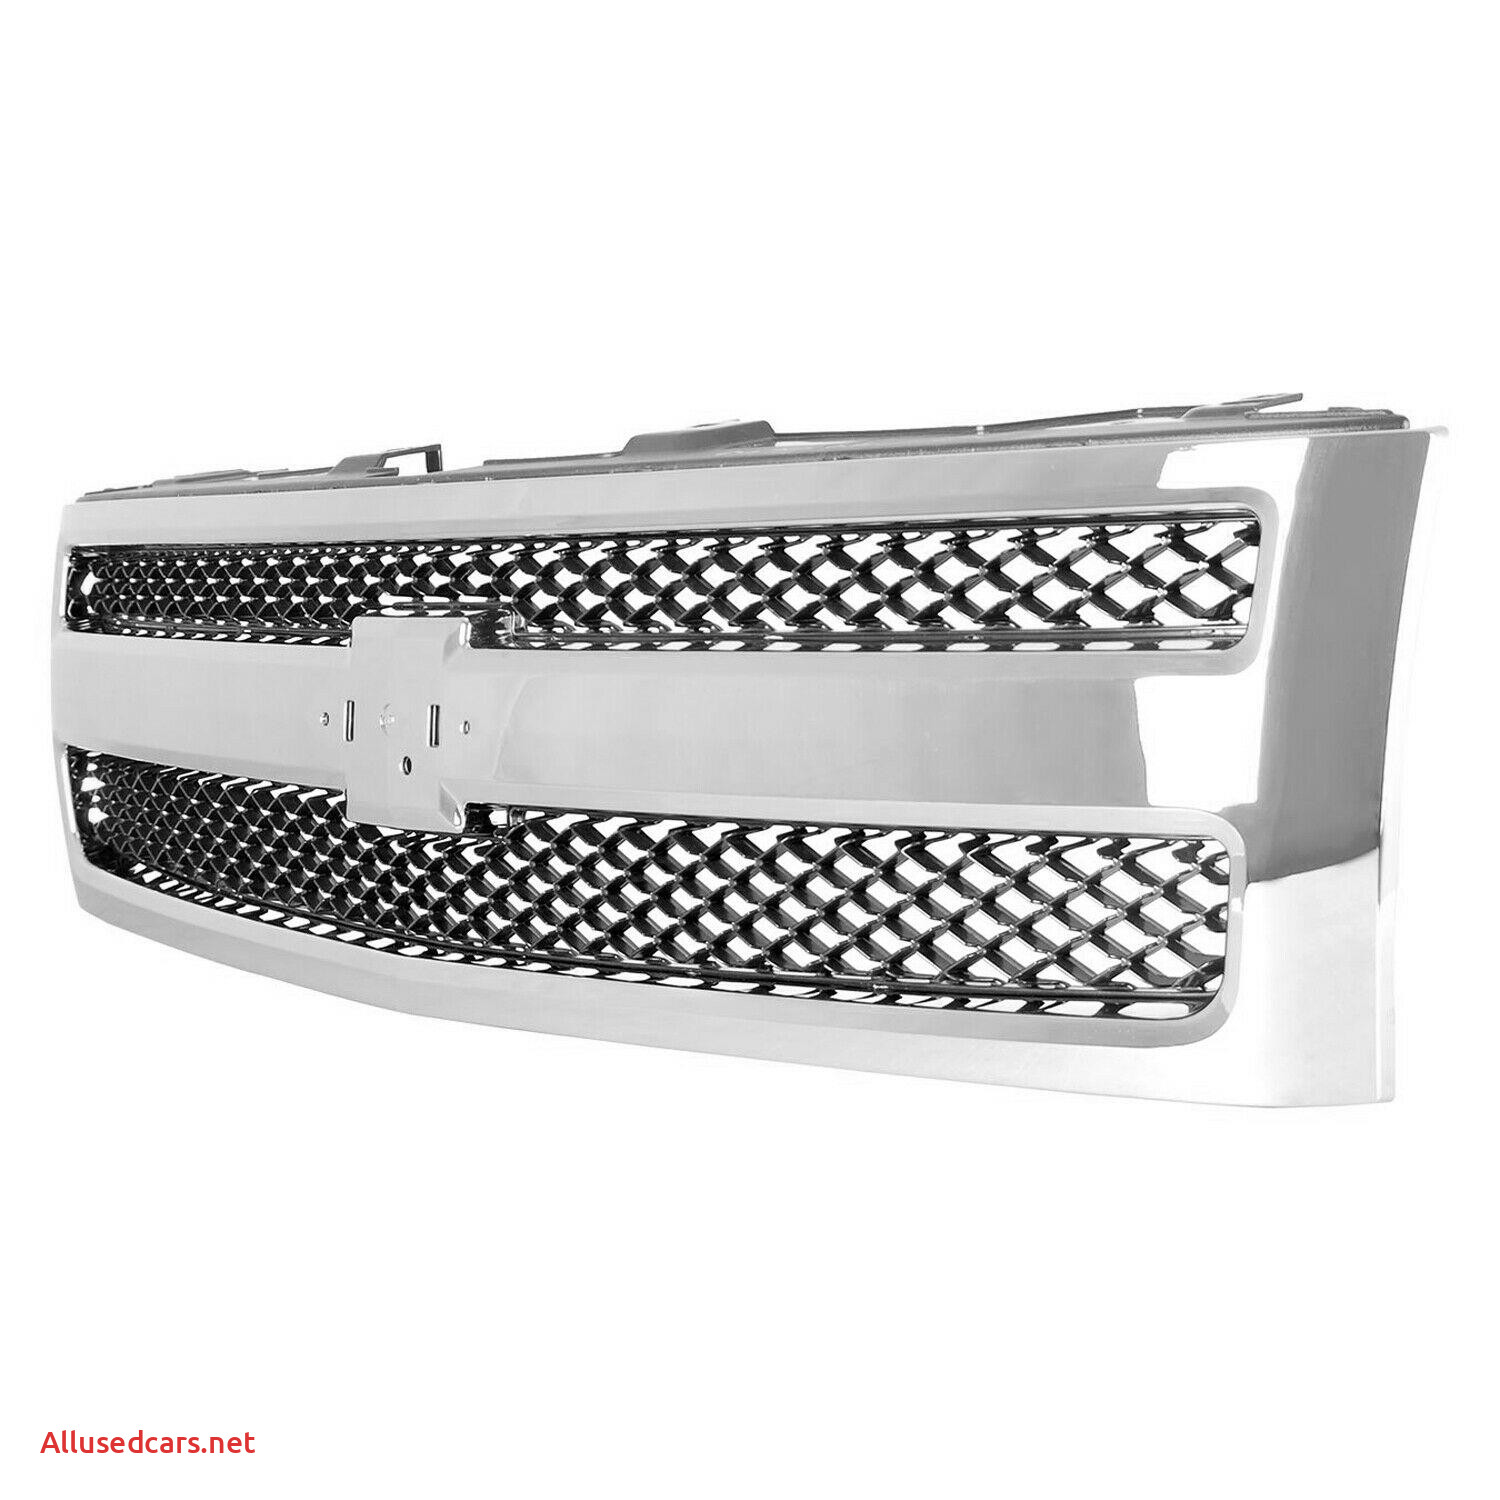 2013 Chevy Silverado Beautiful Details About New Front Grille Fits 2007 2013 Chevrolet Silverado 1500 Gm